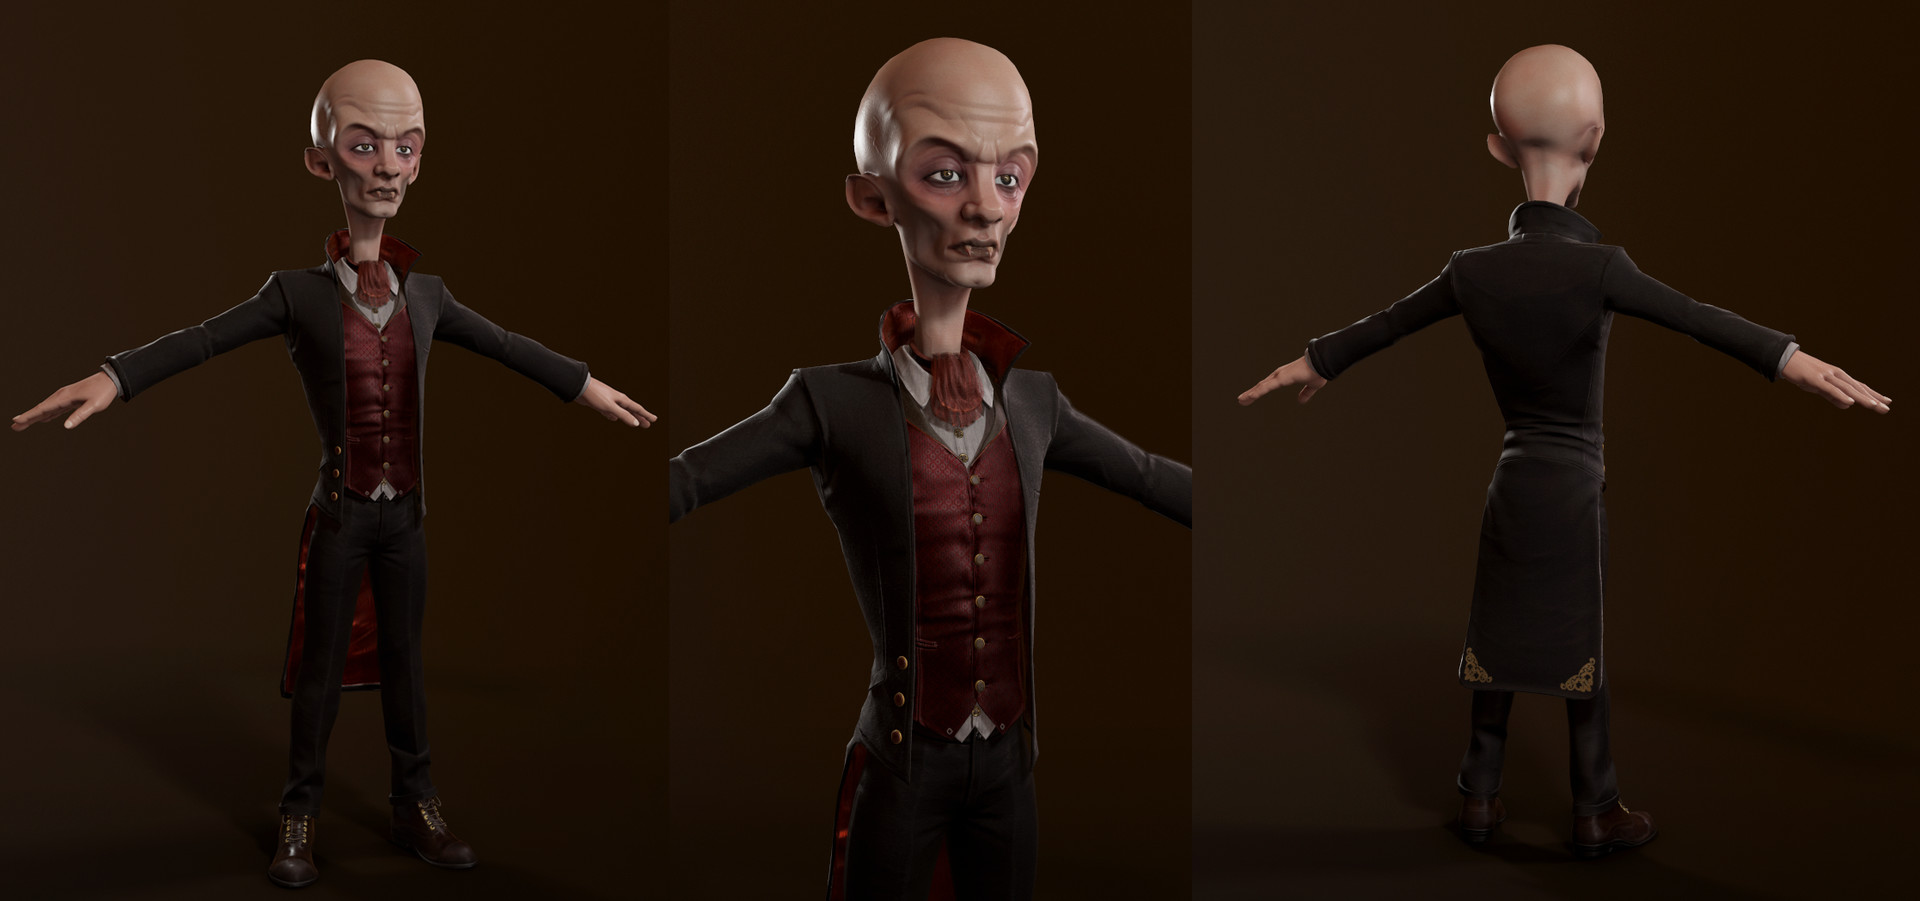 Realtime Cartoon Vampire